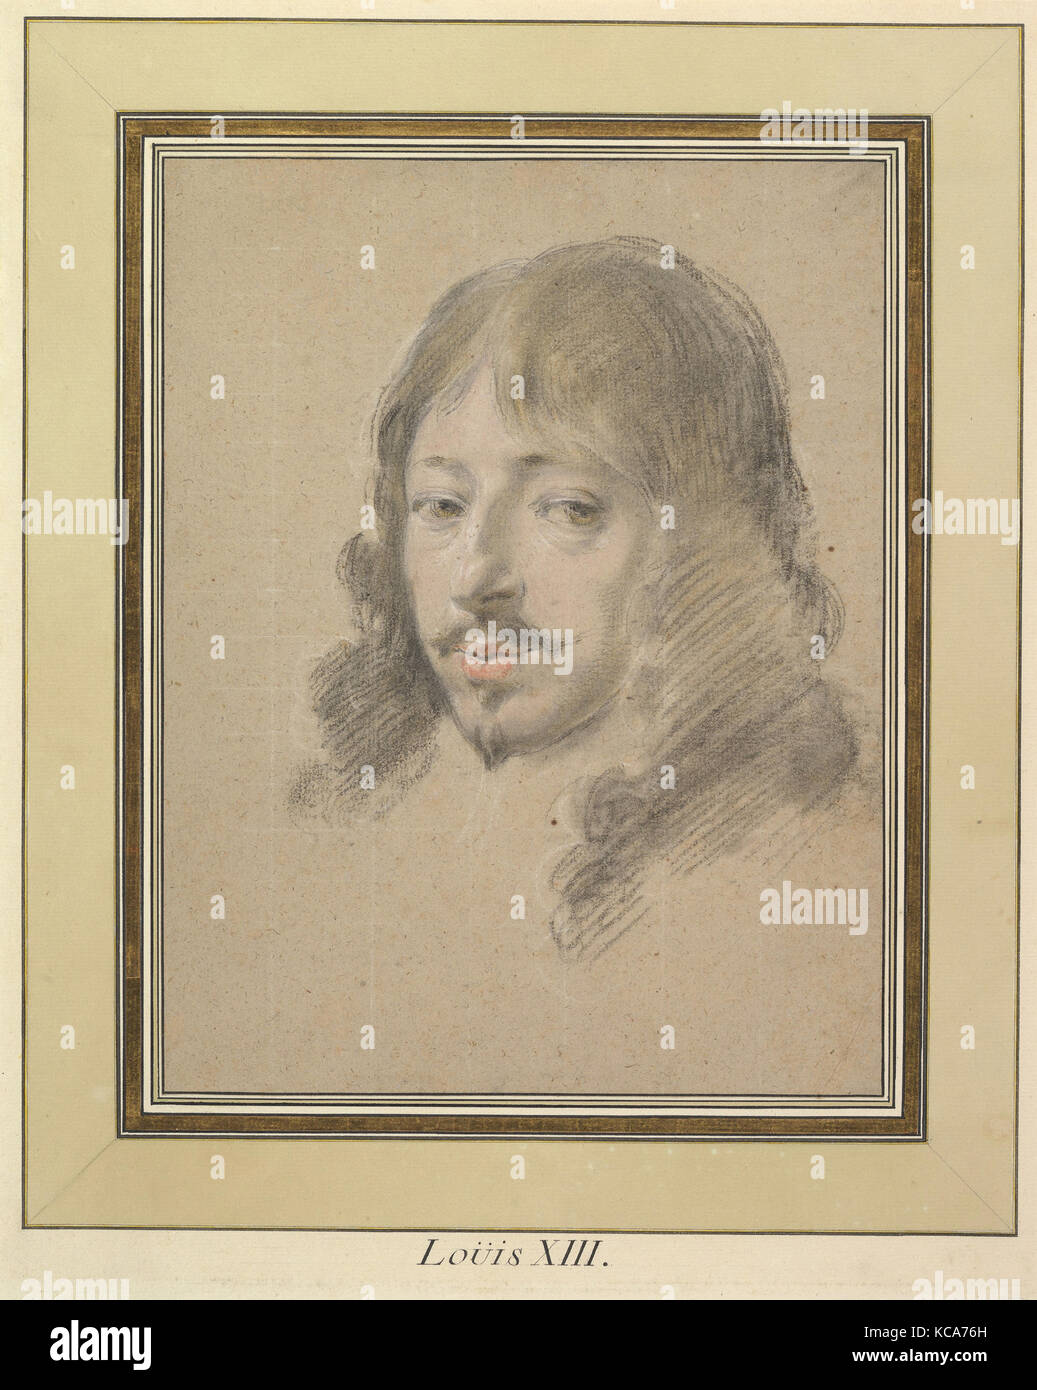 Portrait of louis xiii ca 1632 35 black and white chalk with touches of pastel on light brown paper sheet 10 3 4 x 8 5 16